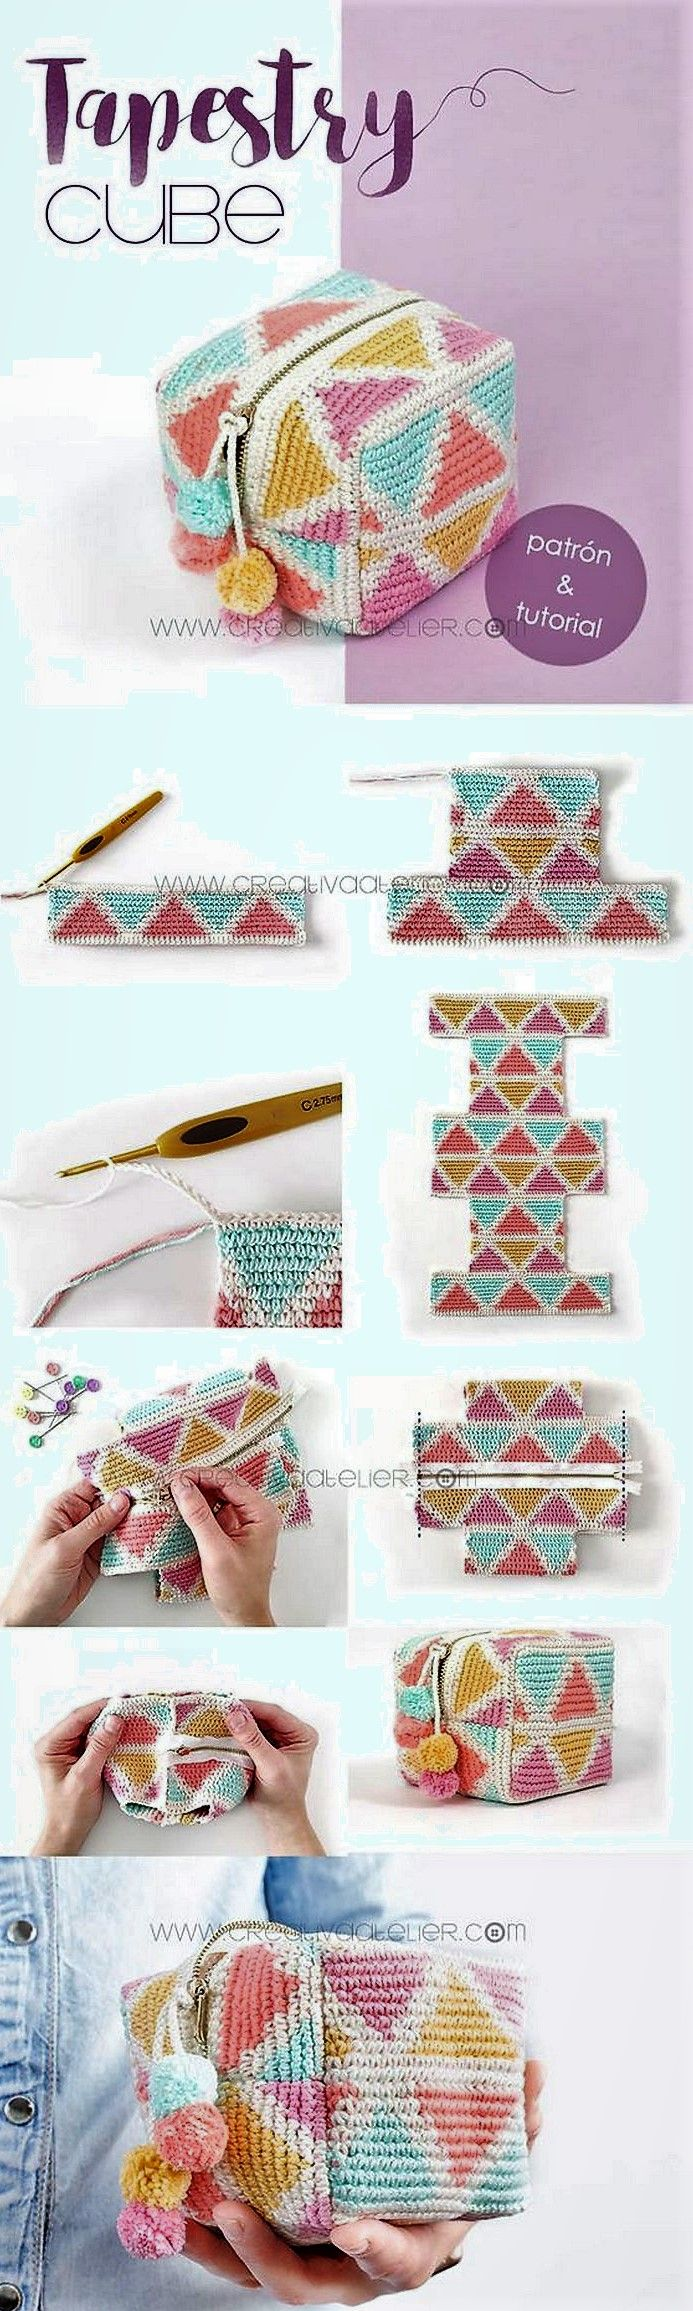 2019 Latest And Adorable Free Crochet Patterns #tejidos